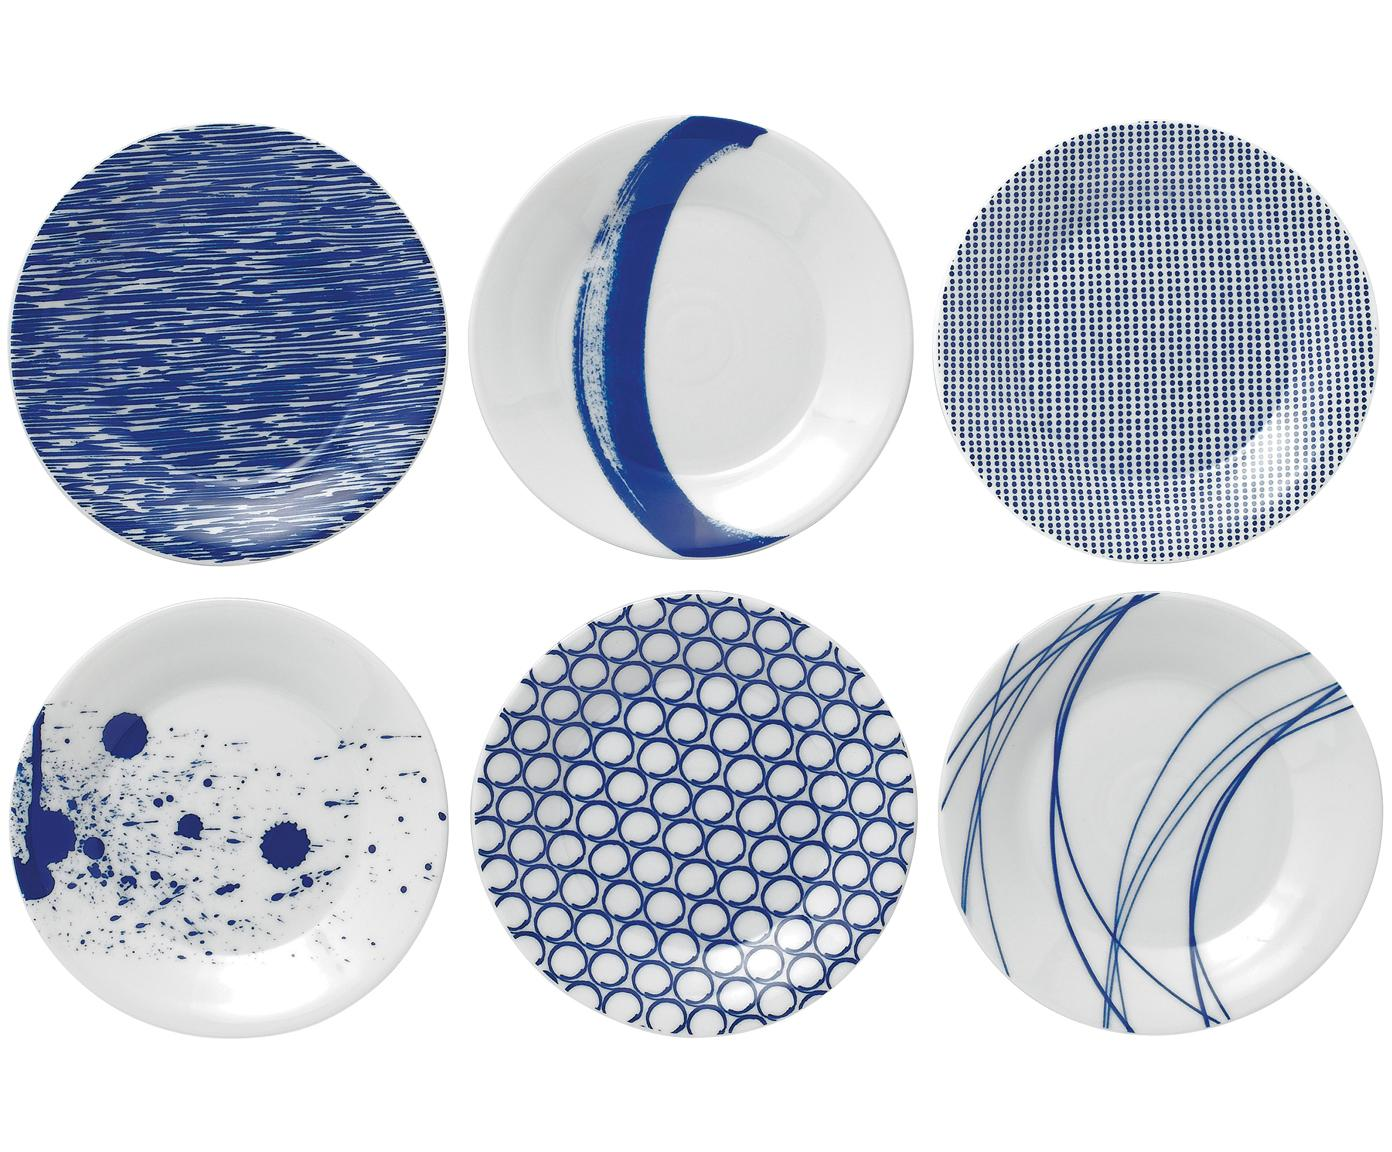 Set de platos de pan Pacific, 6 pzas., Porcelana, Blanco, azul pacifico, Ø 16 cm